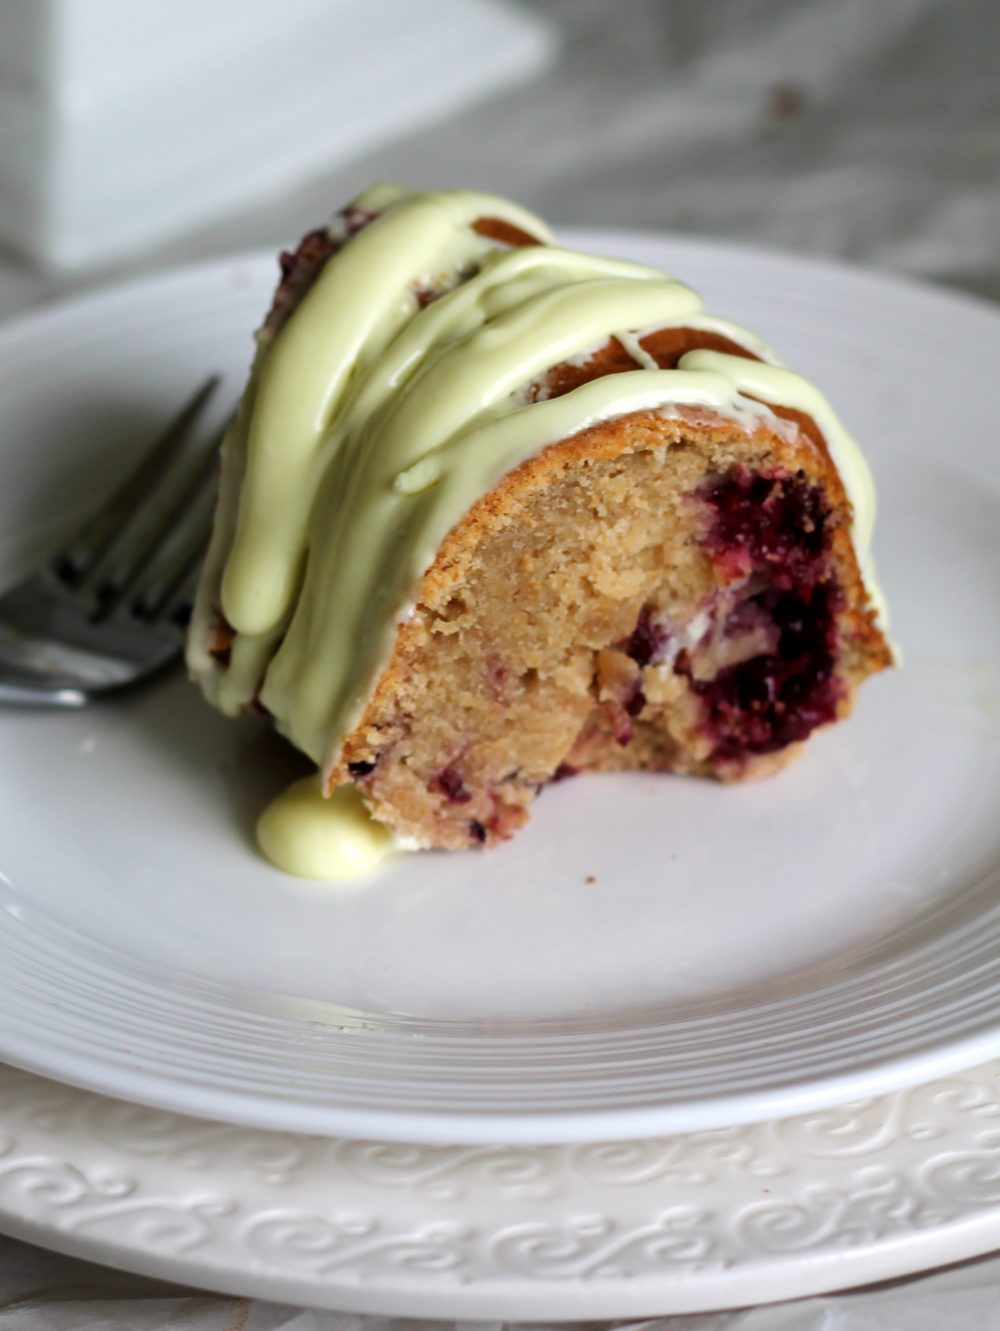 slice of lemon bundt cake made with fresh blackberries